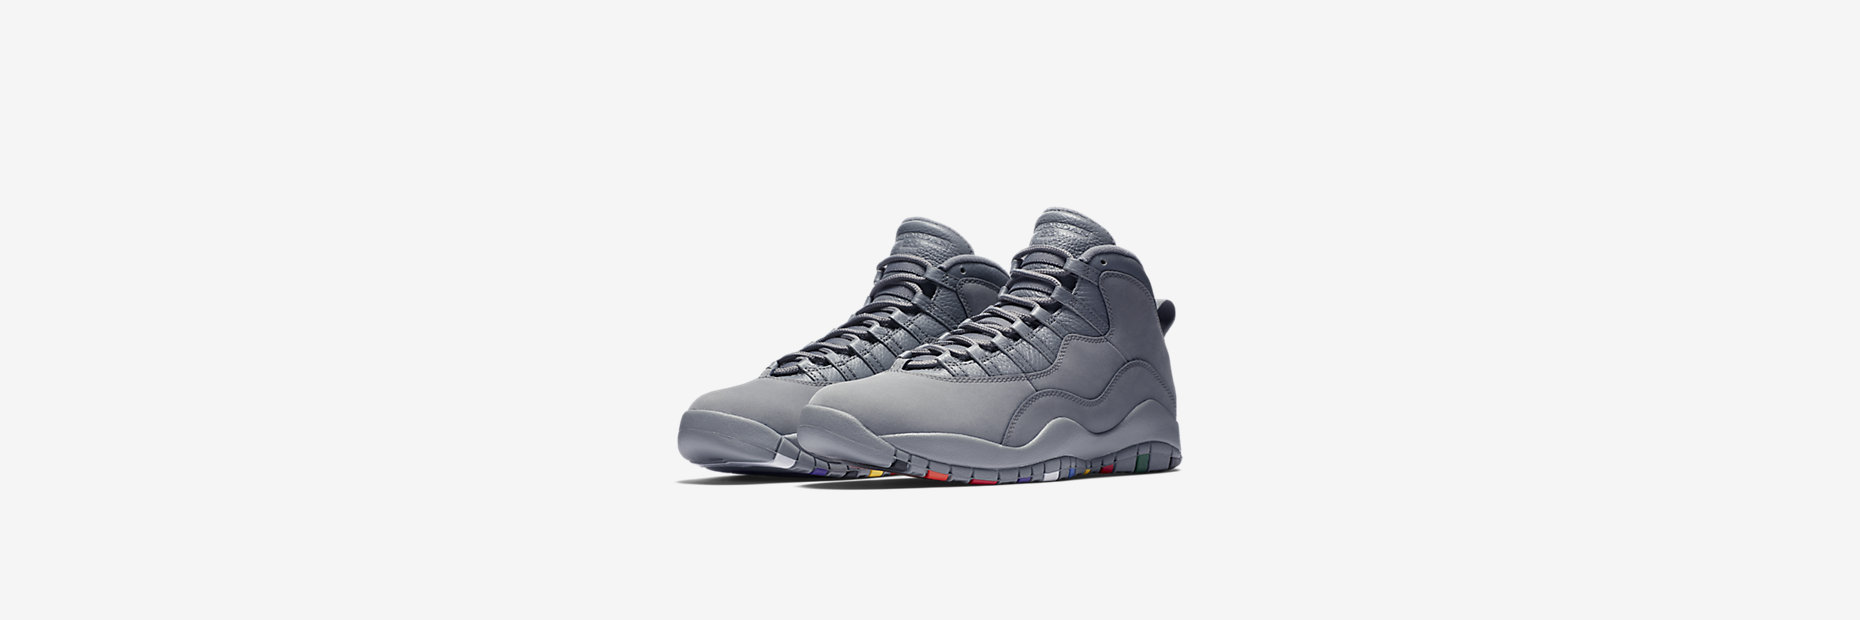 Air Jordan 9 Retro Cool Grey